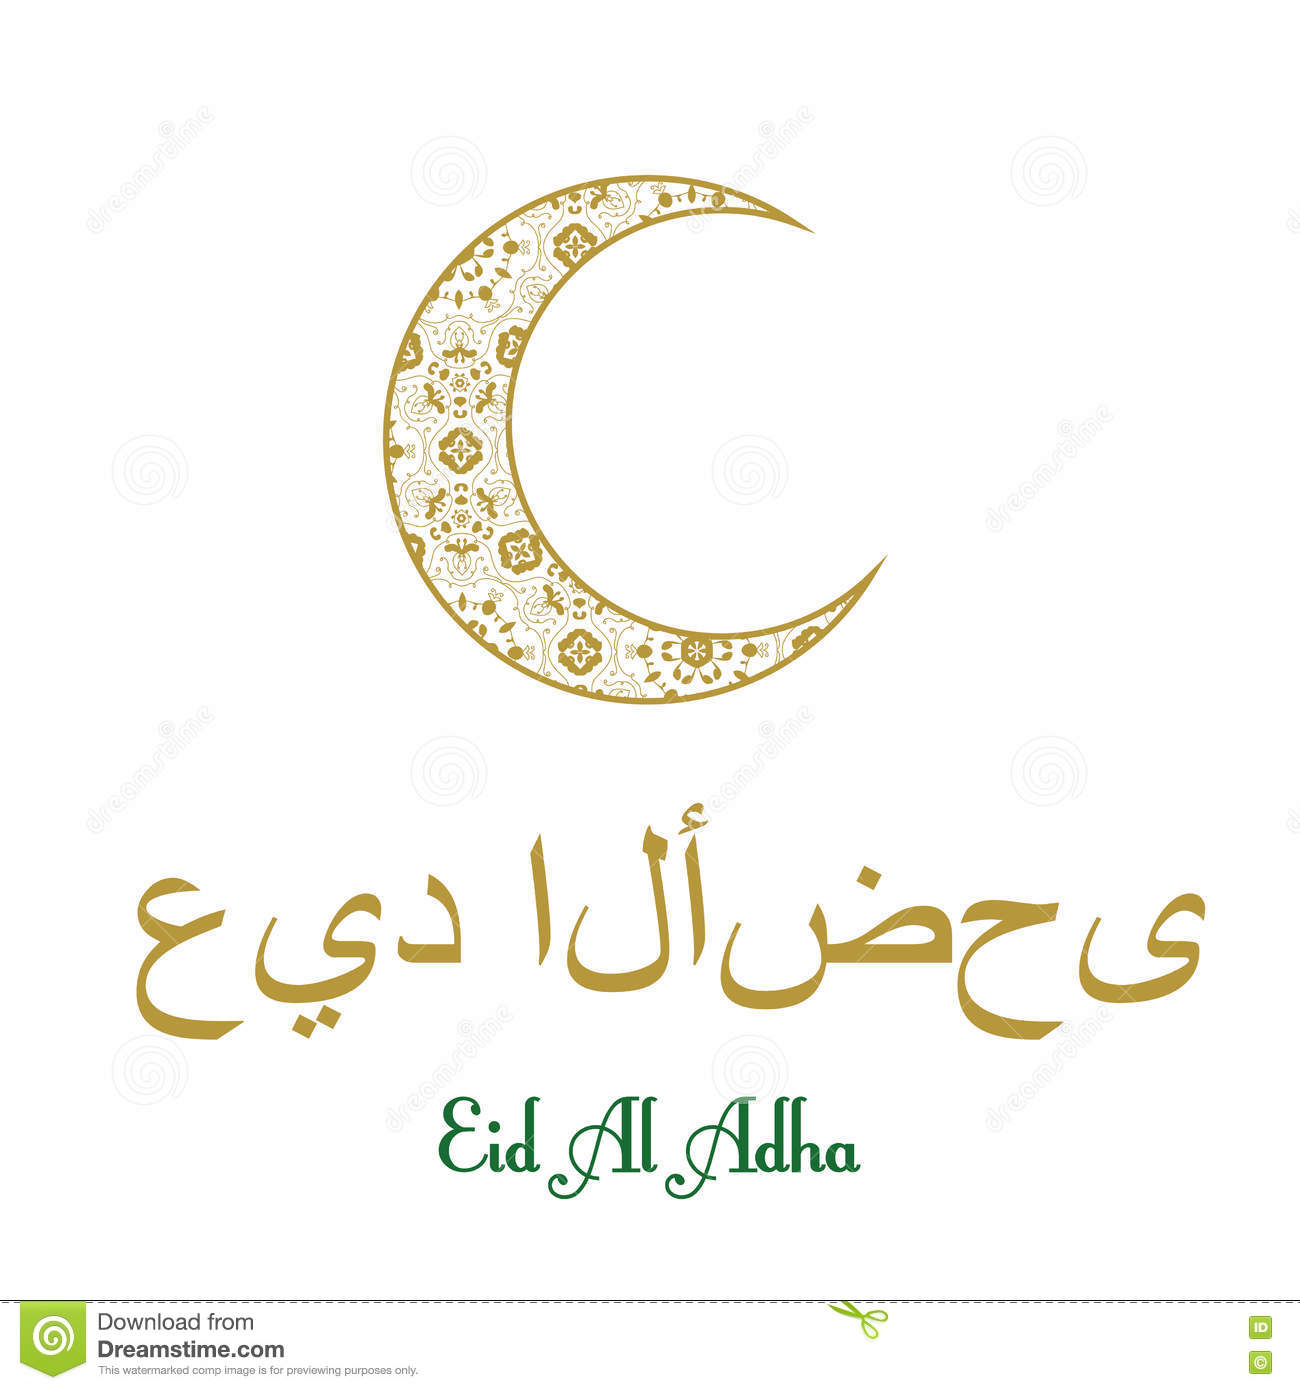 Greeting Card For Eid Al Adha Stock Vector Illustration Of Islamic